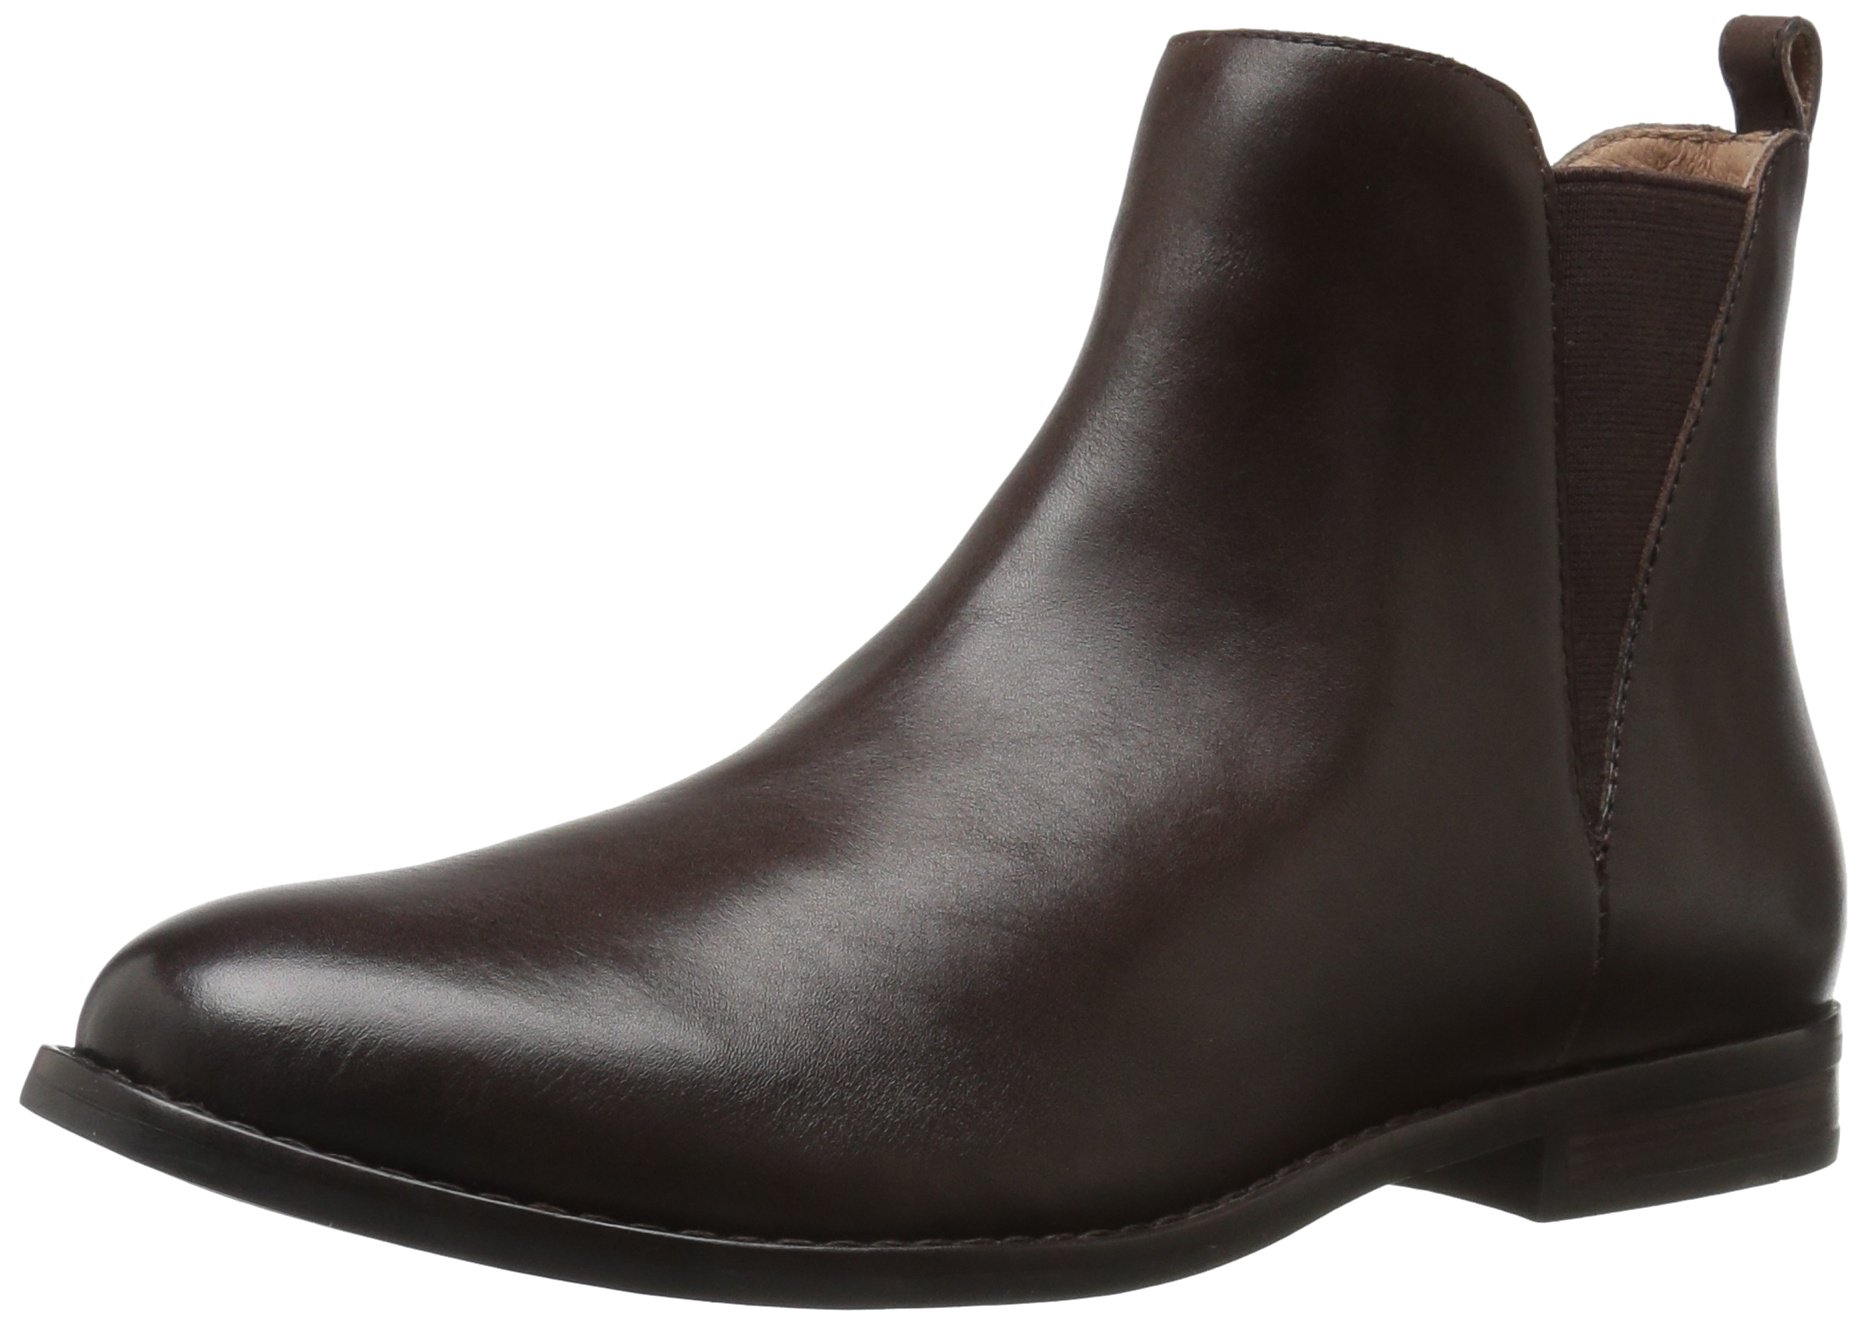 206 Collective Women's Ballard Chelsea Ankle Boot, Chocolate Brown, 11 B US